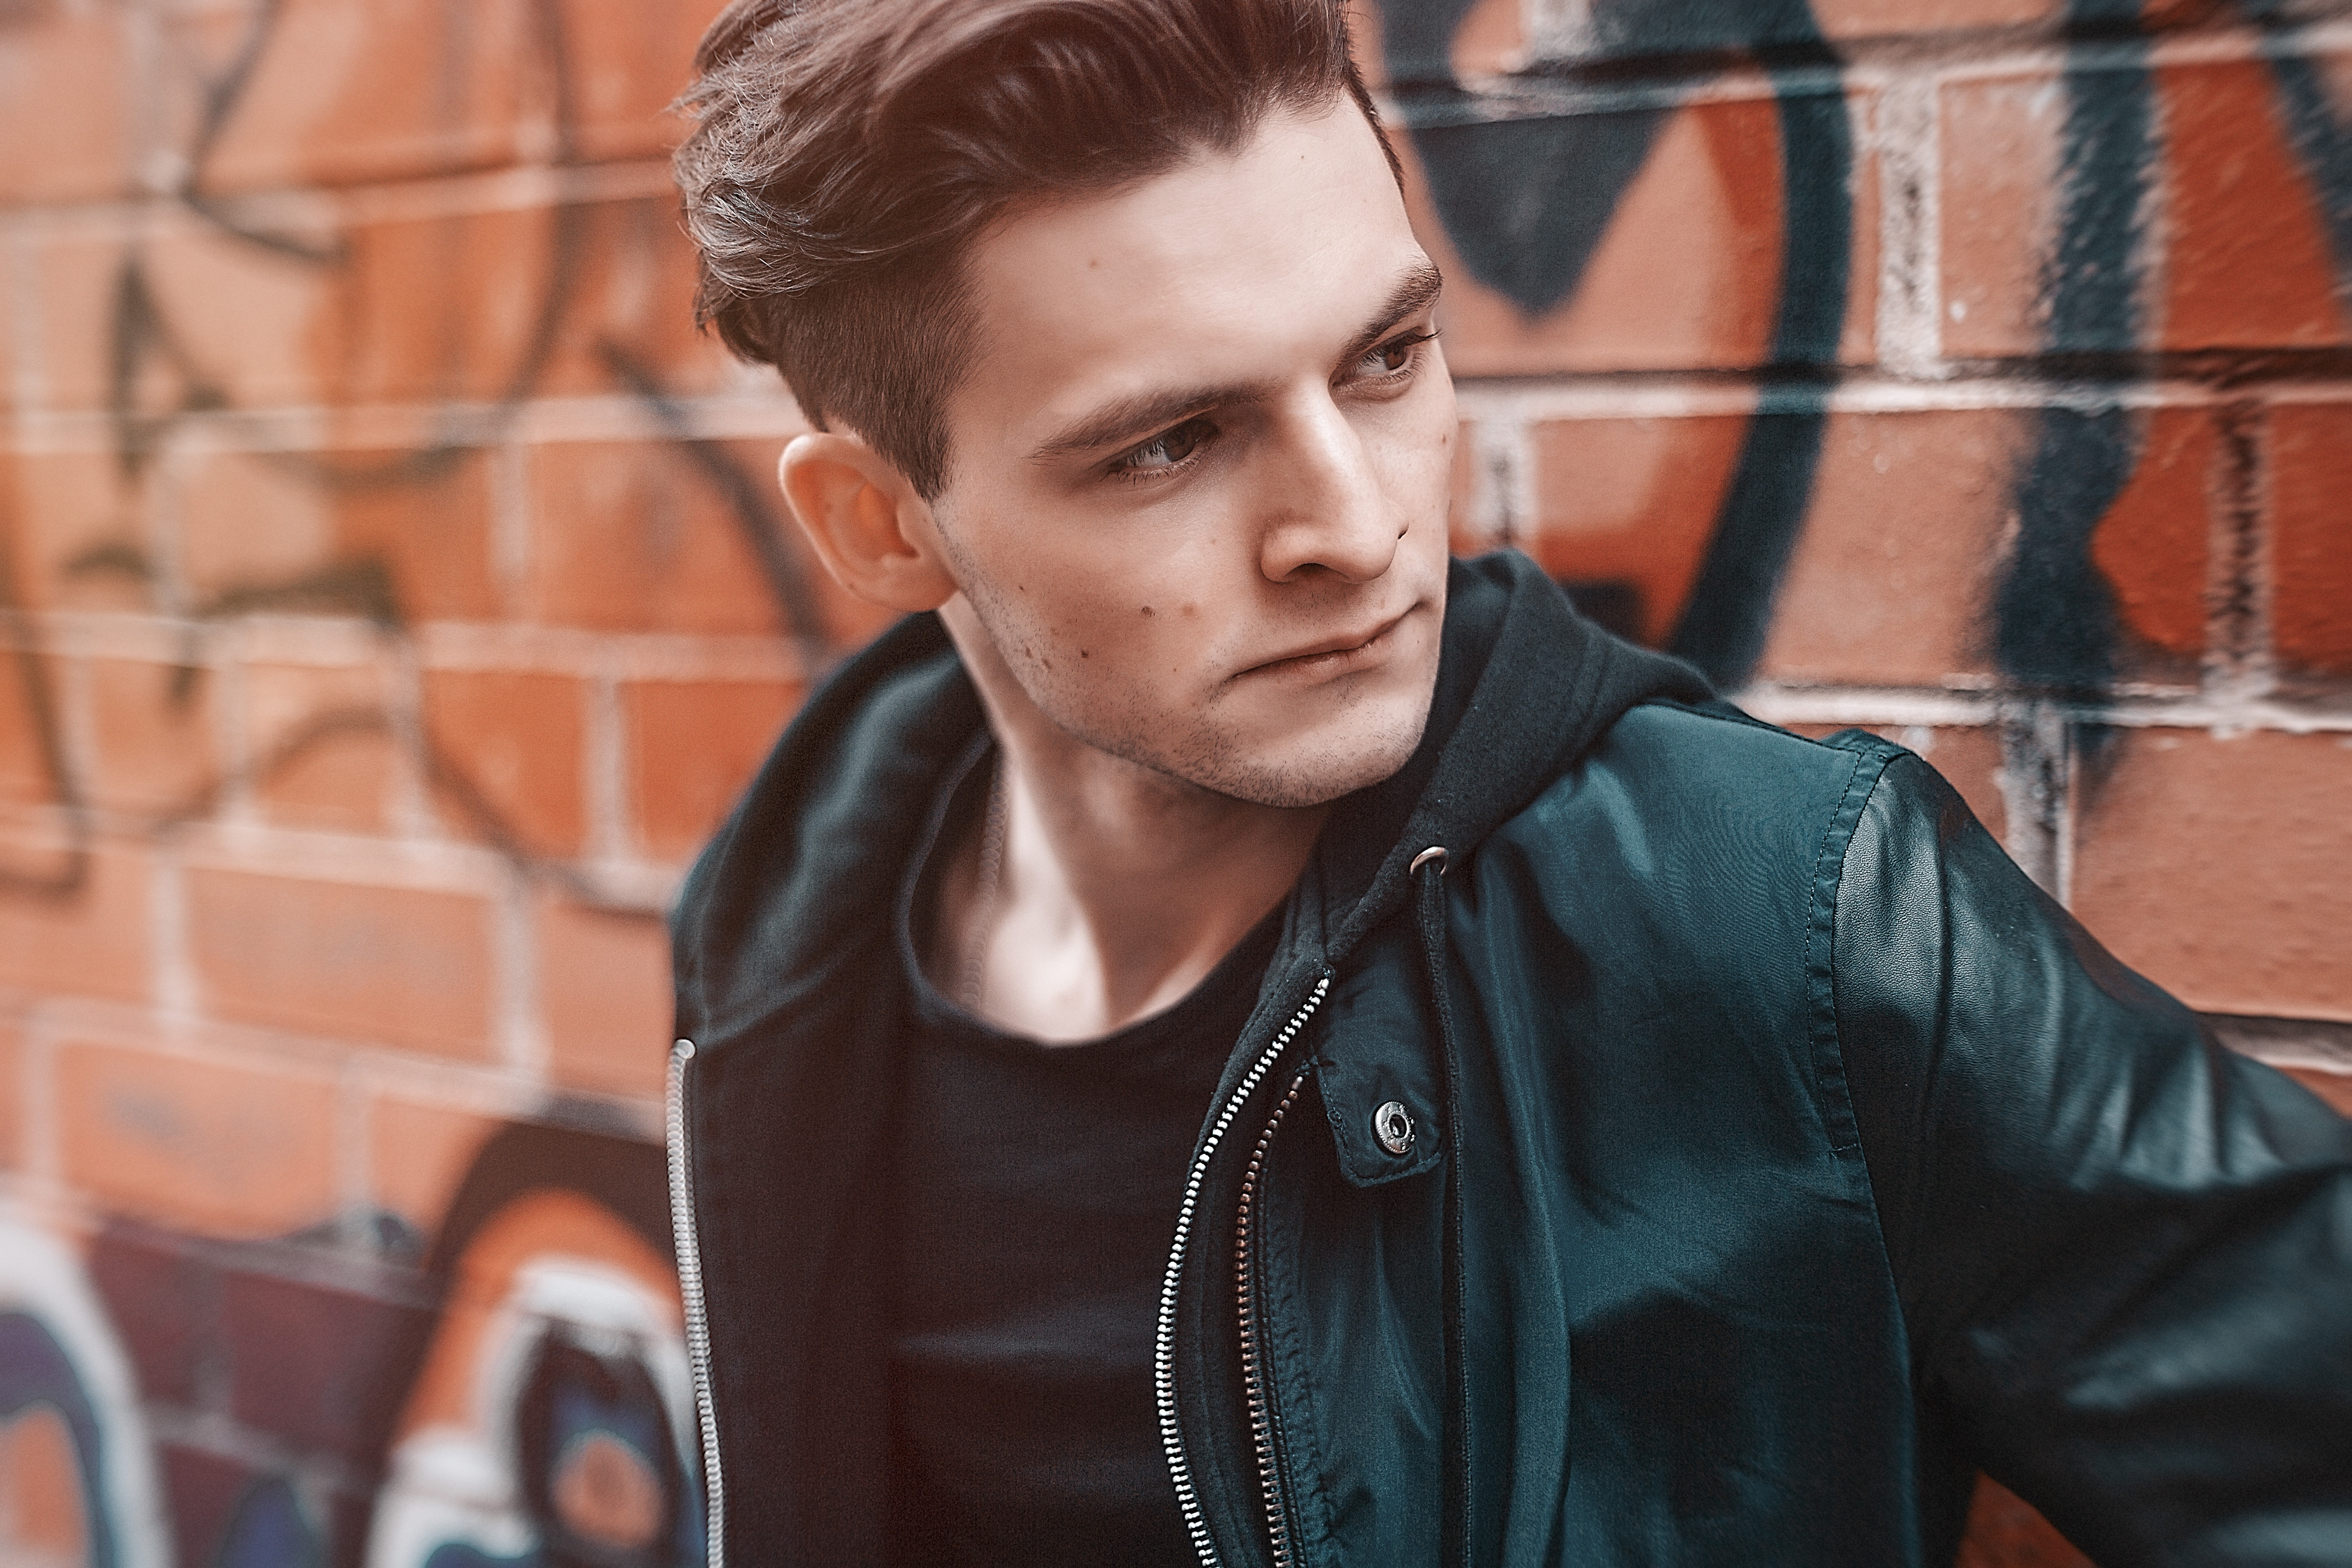 Close-up Photography of Man Wearing Leather Jacket, Adult, Model, Wear, Urban, HQ Photo